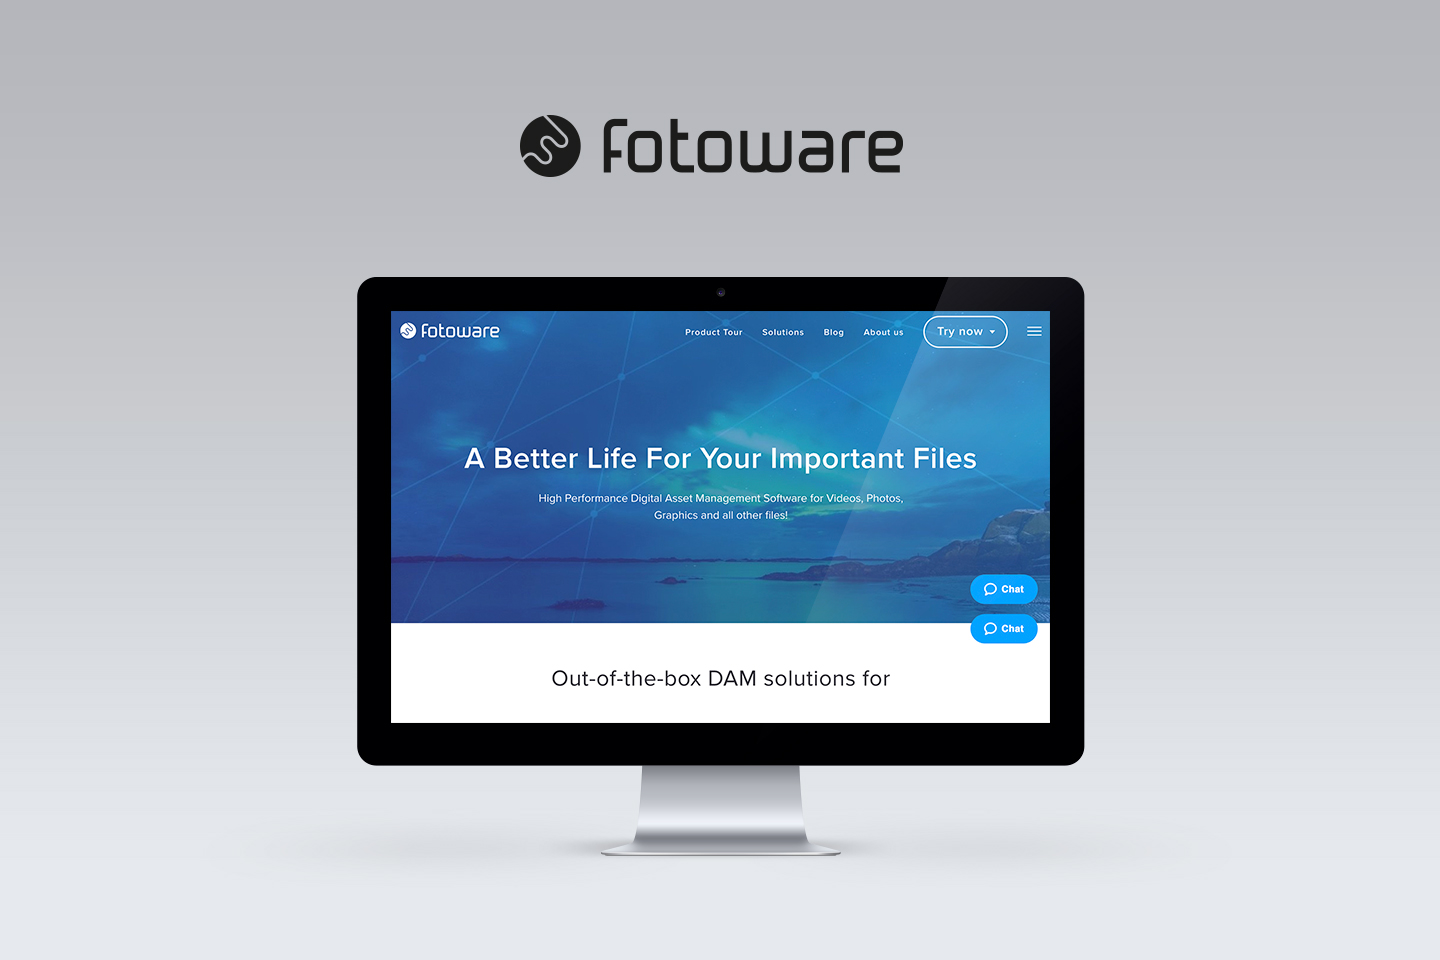 Fotoware website on imac